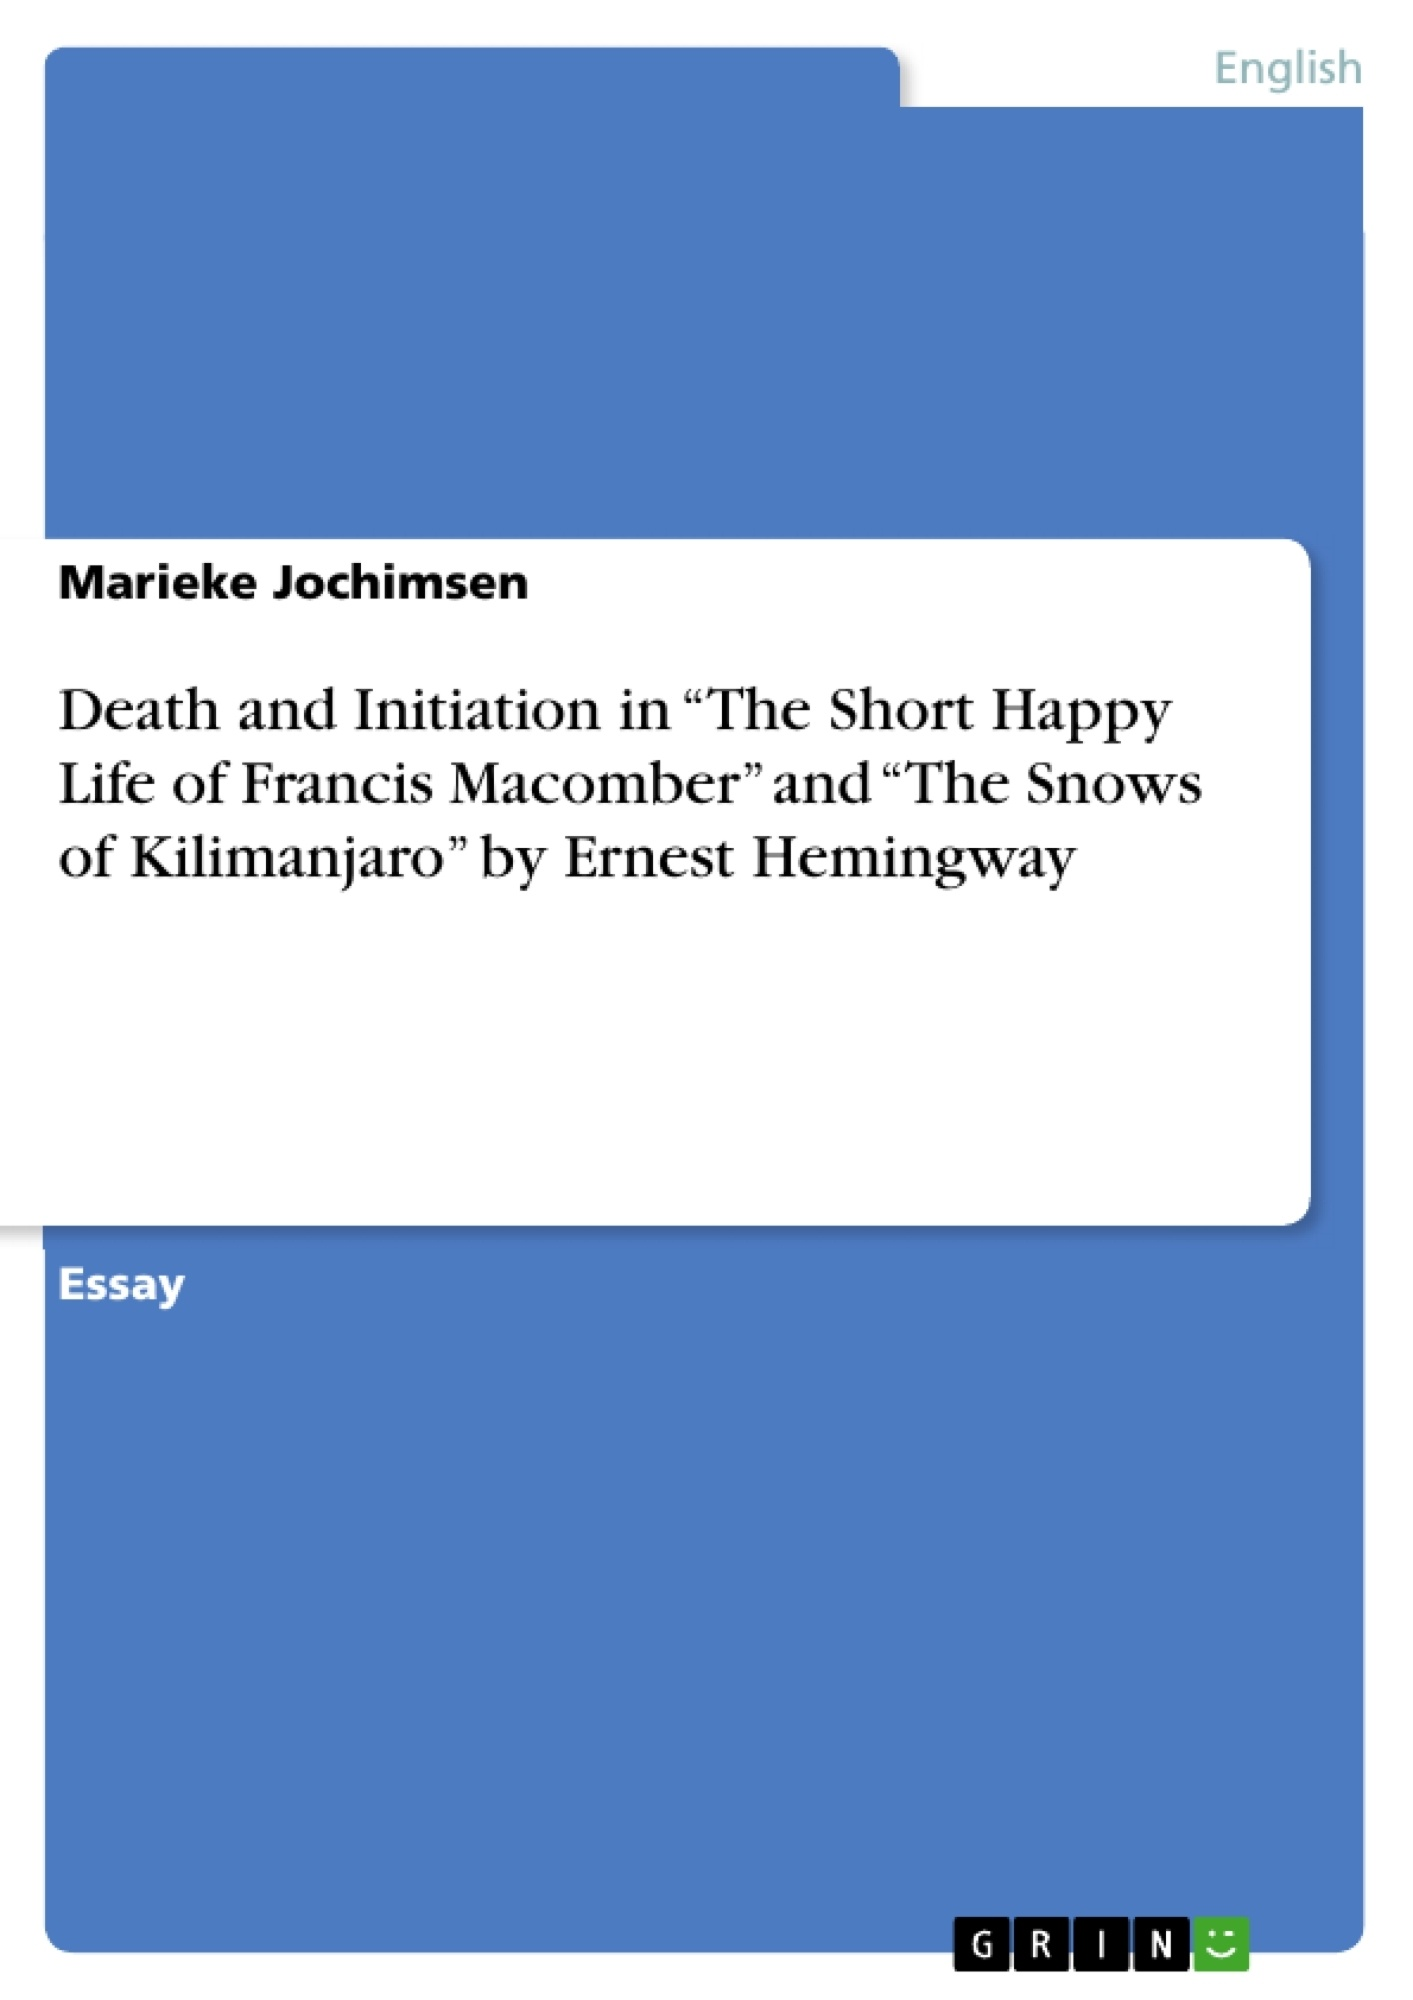 a summary of the short happy life of francis macomber by ernest hemingway The ernest hemingway short story the short happy life of francis macomber examines these questions within the scope of a few days in a disastrous african safari ernest hemingway on safari, circa 1934.